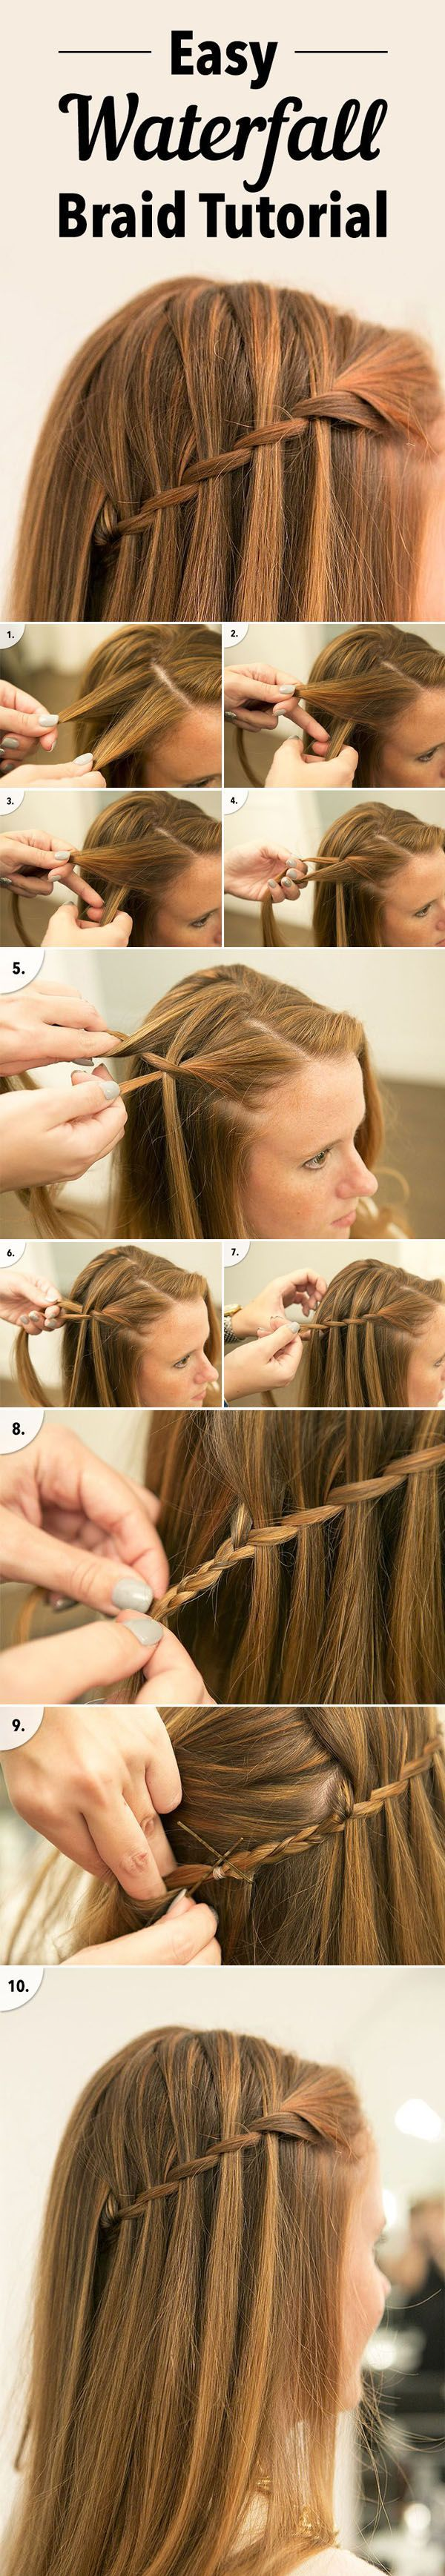 easy waterfall braid tutorial for diy wedding hairstyle ideas